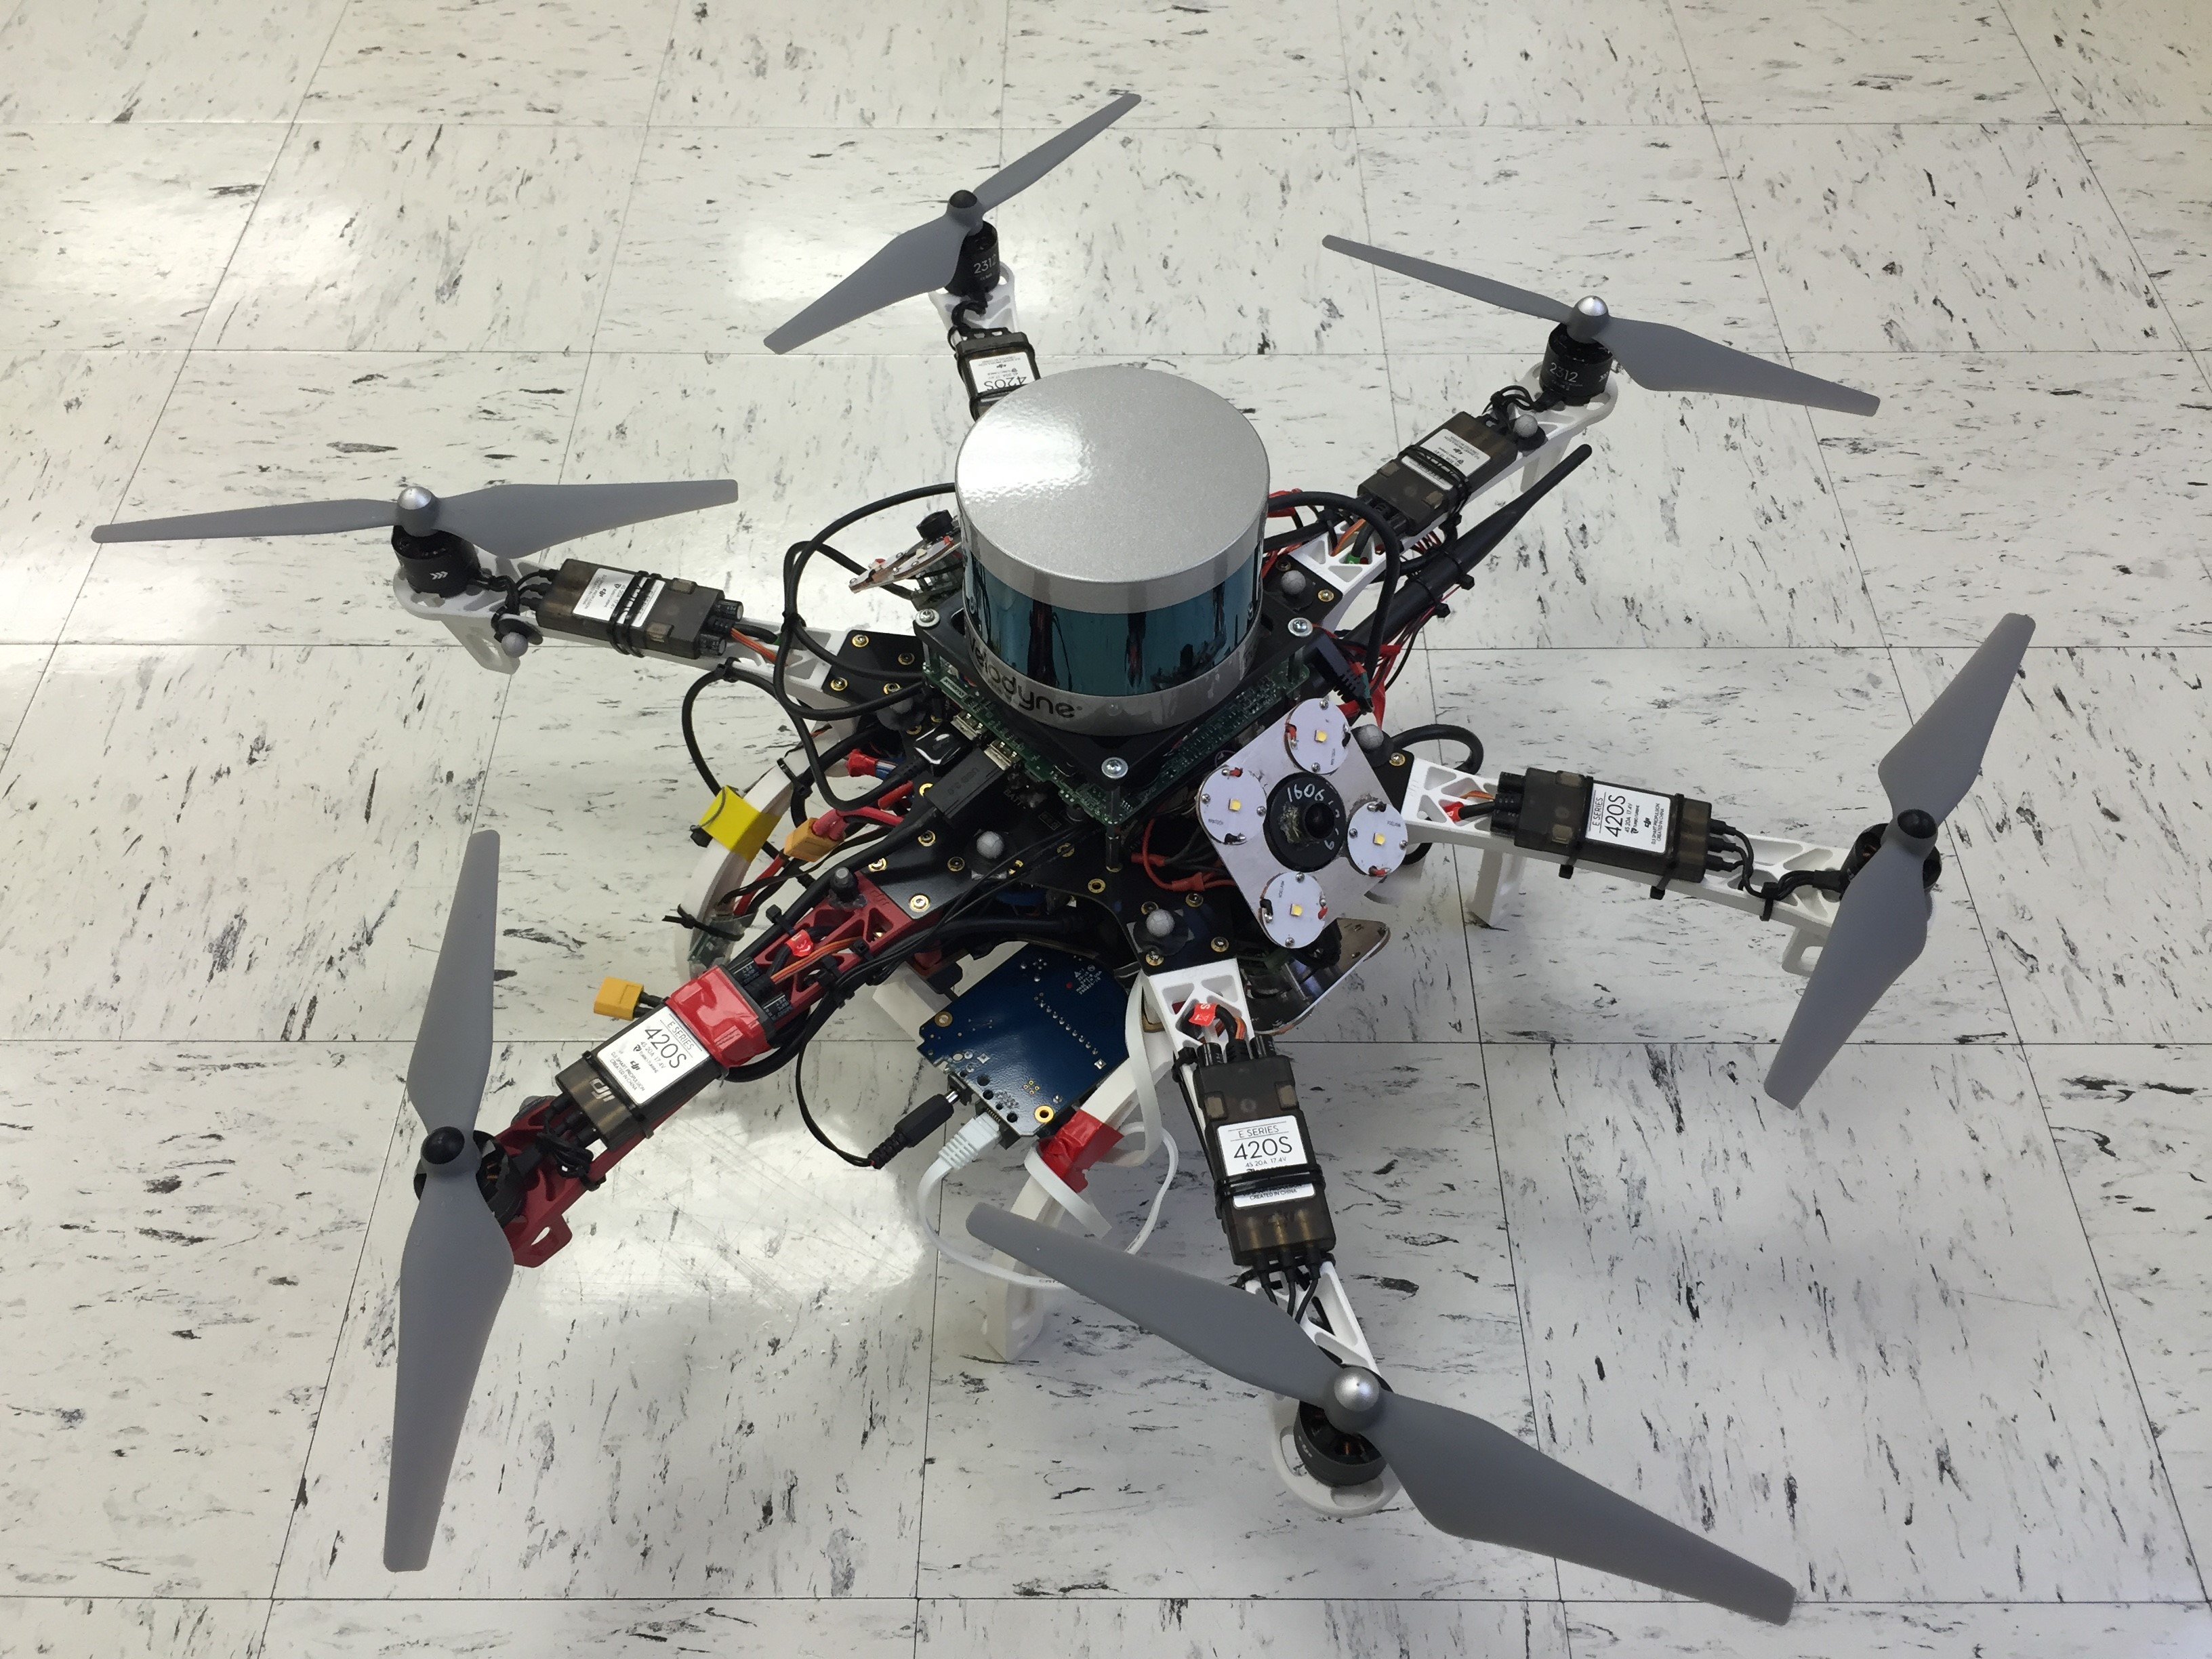 The third version of the autonomous tunnel inspection UAS.